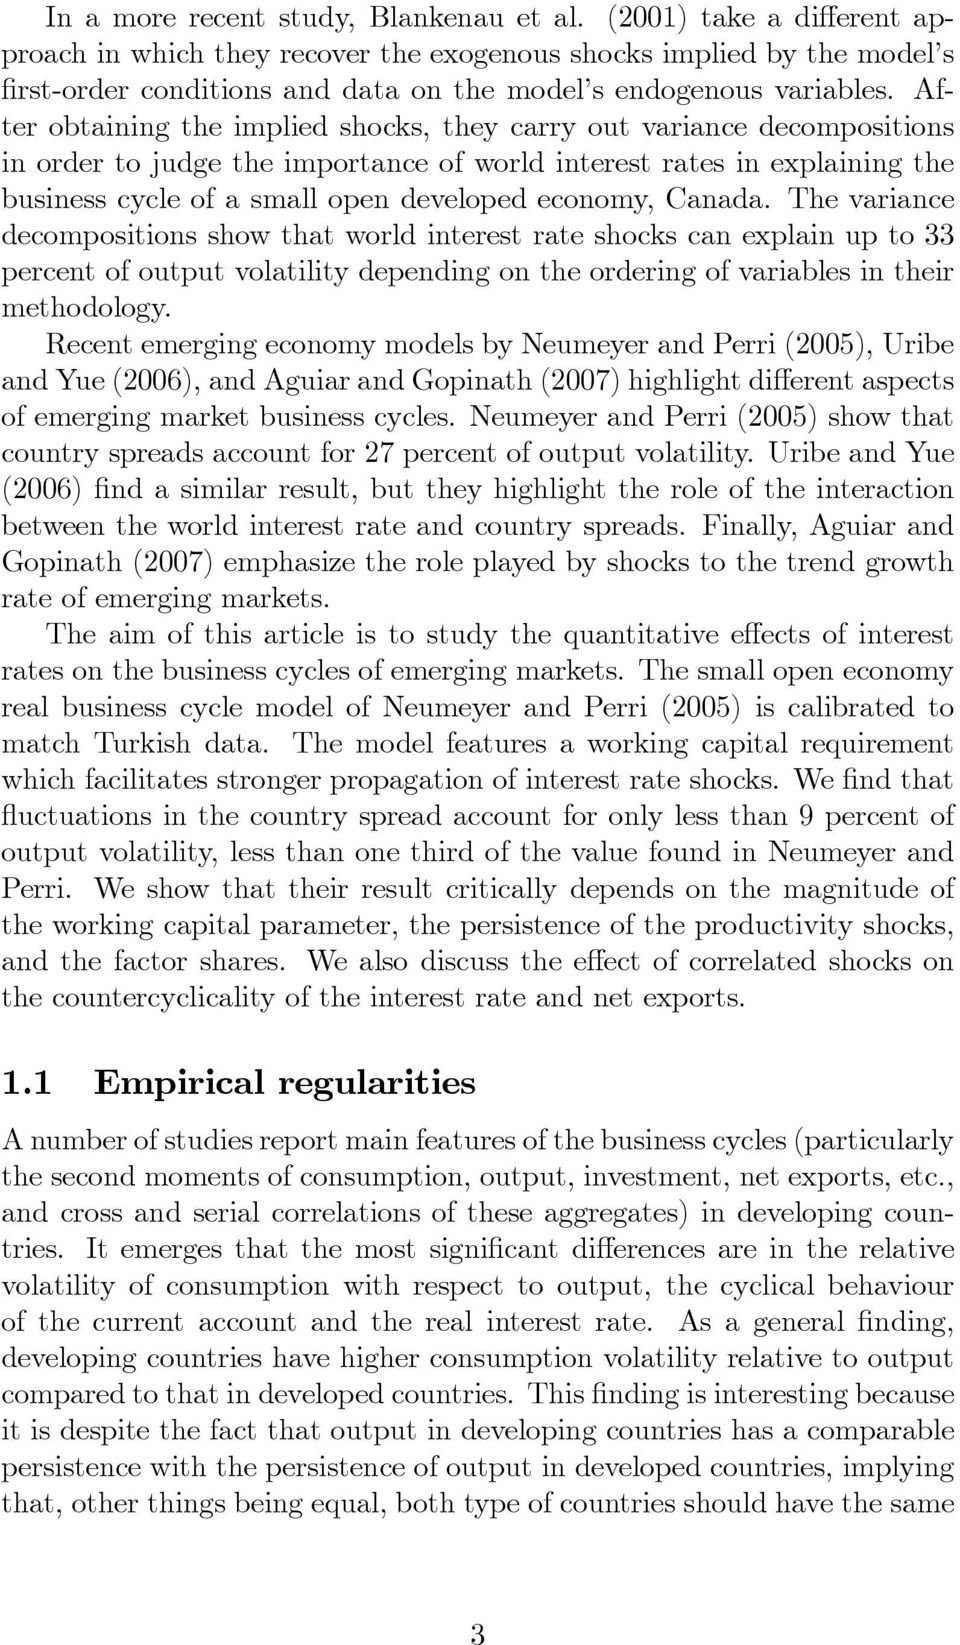 After obtaining the implied shocks, they carry out variance decompositions in order to judge the importance of world interest rates in explaining the business cycle of a small open developed economy,